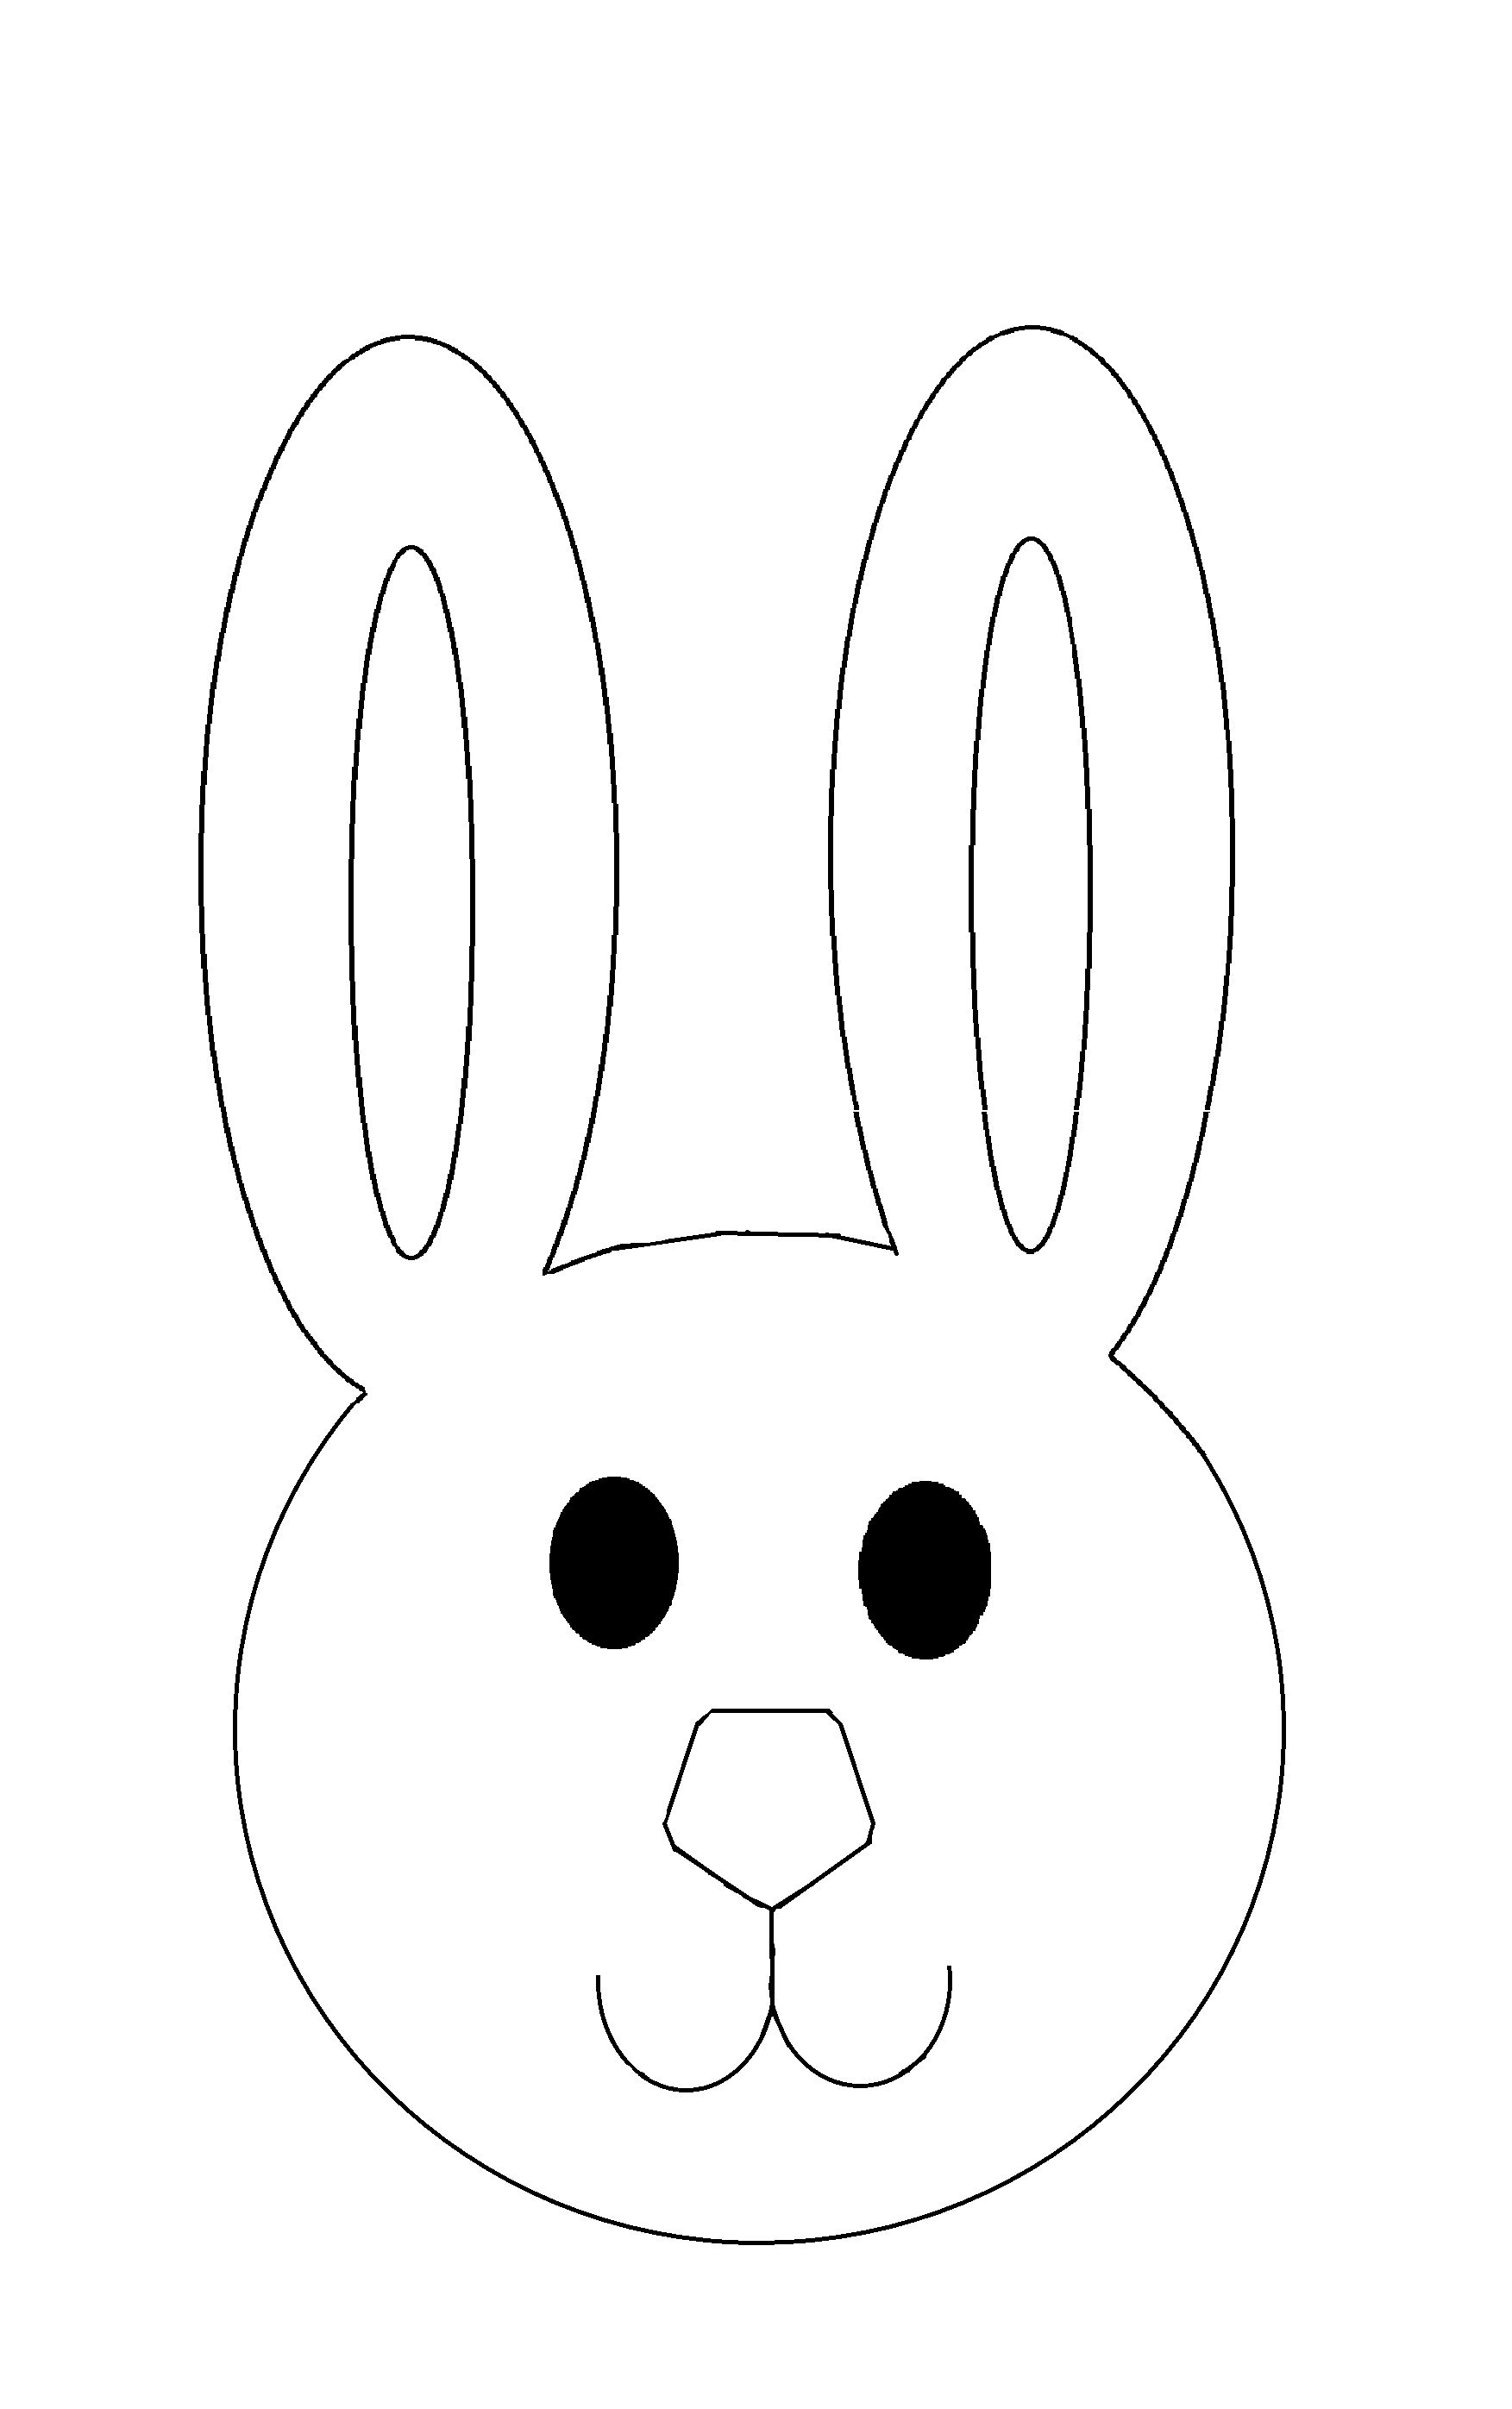 Bunny Head Outline Printable Easter Bunny Cutout 20cm Code